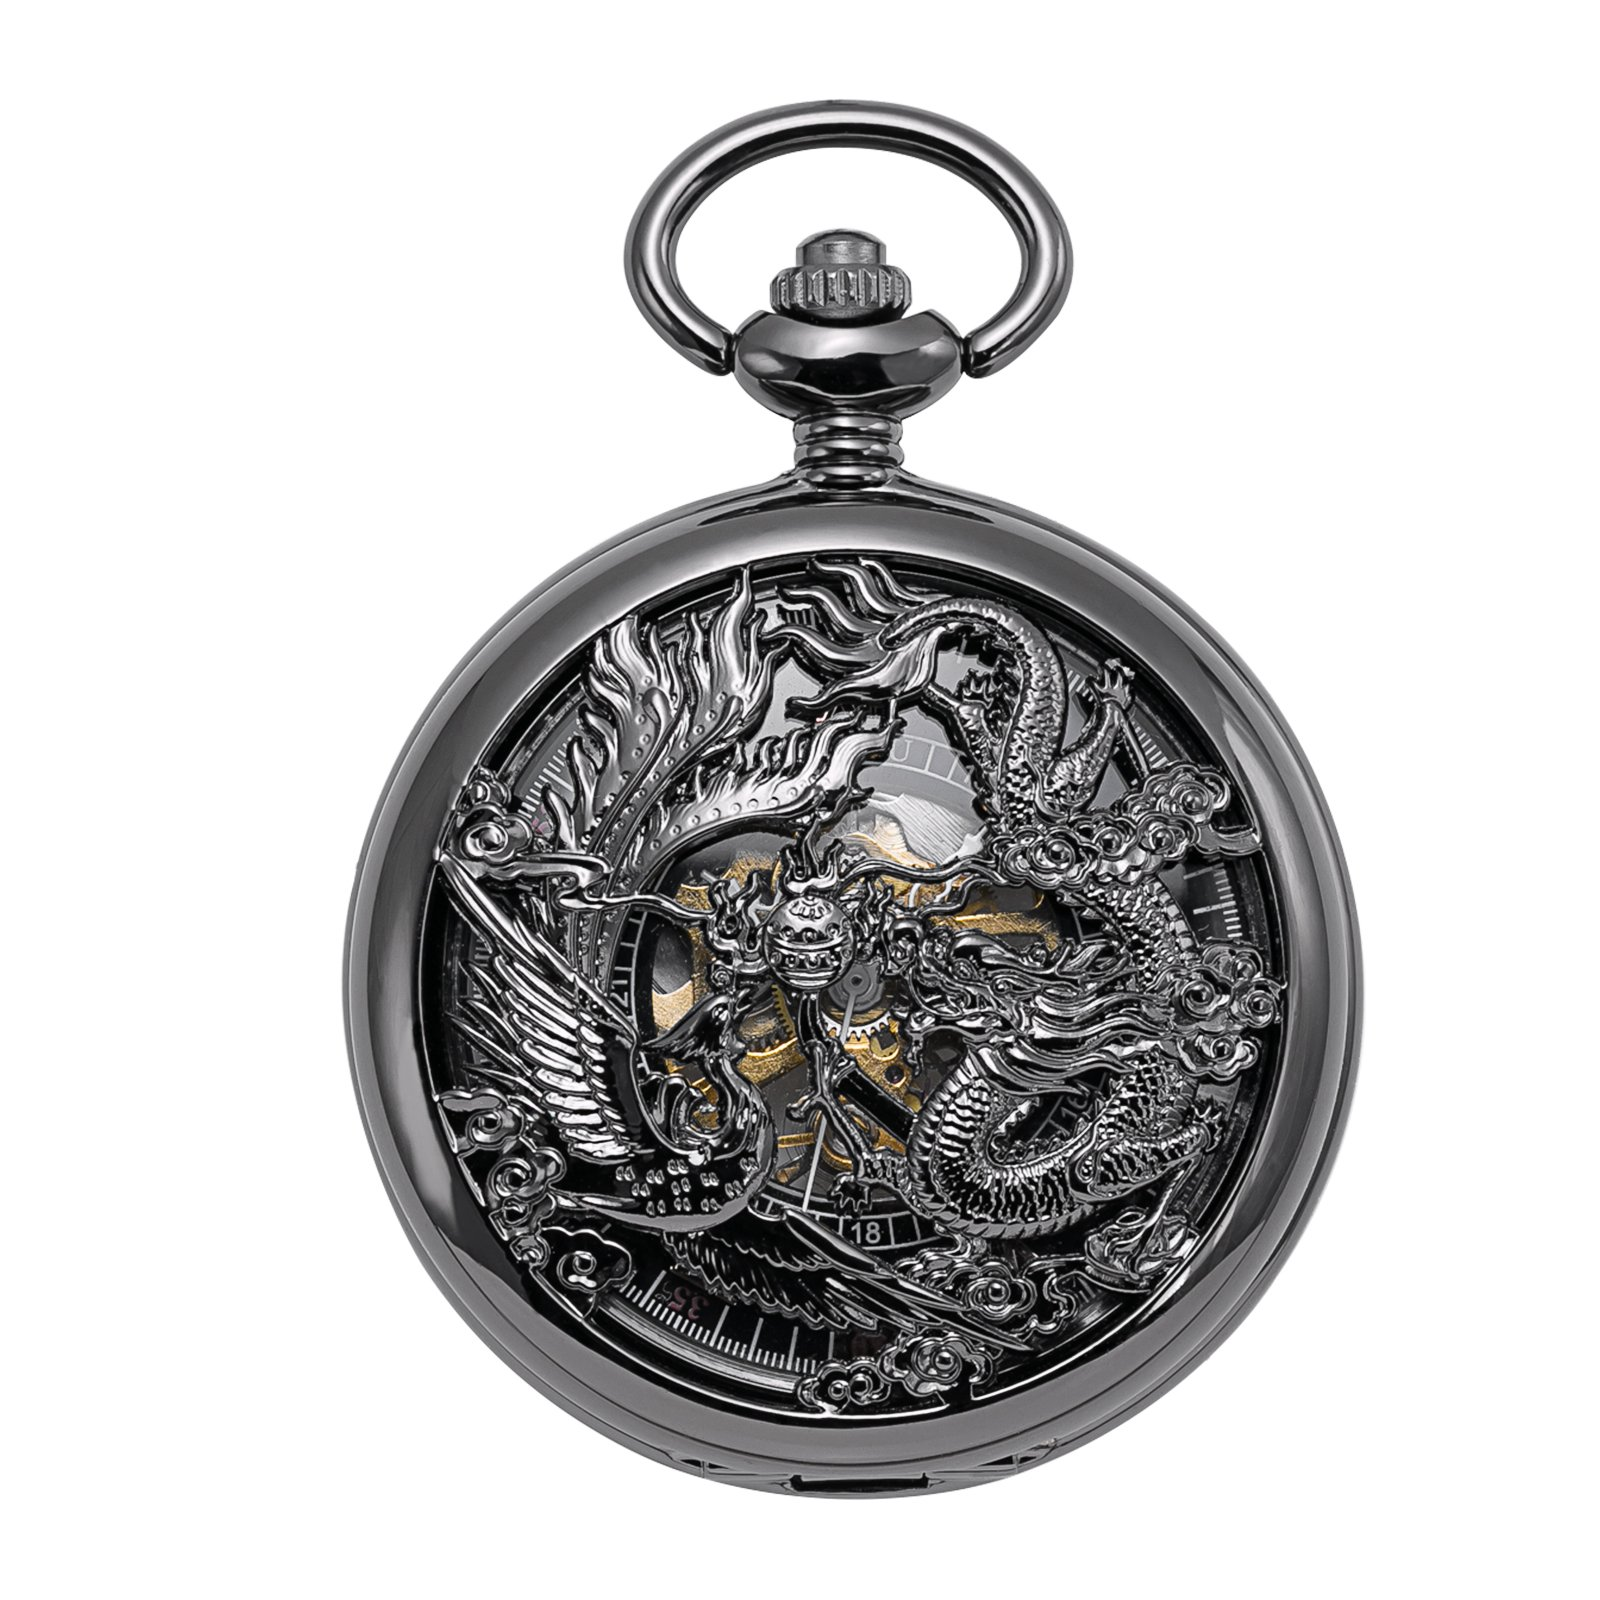 TREEWETO Mechanical Skeleton Pocket Watch Lucky Phoenix & Dragon Hollow Case with Chain + Gift Box by TREEWETO